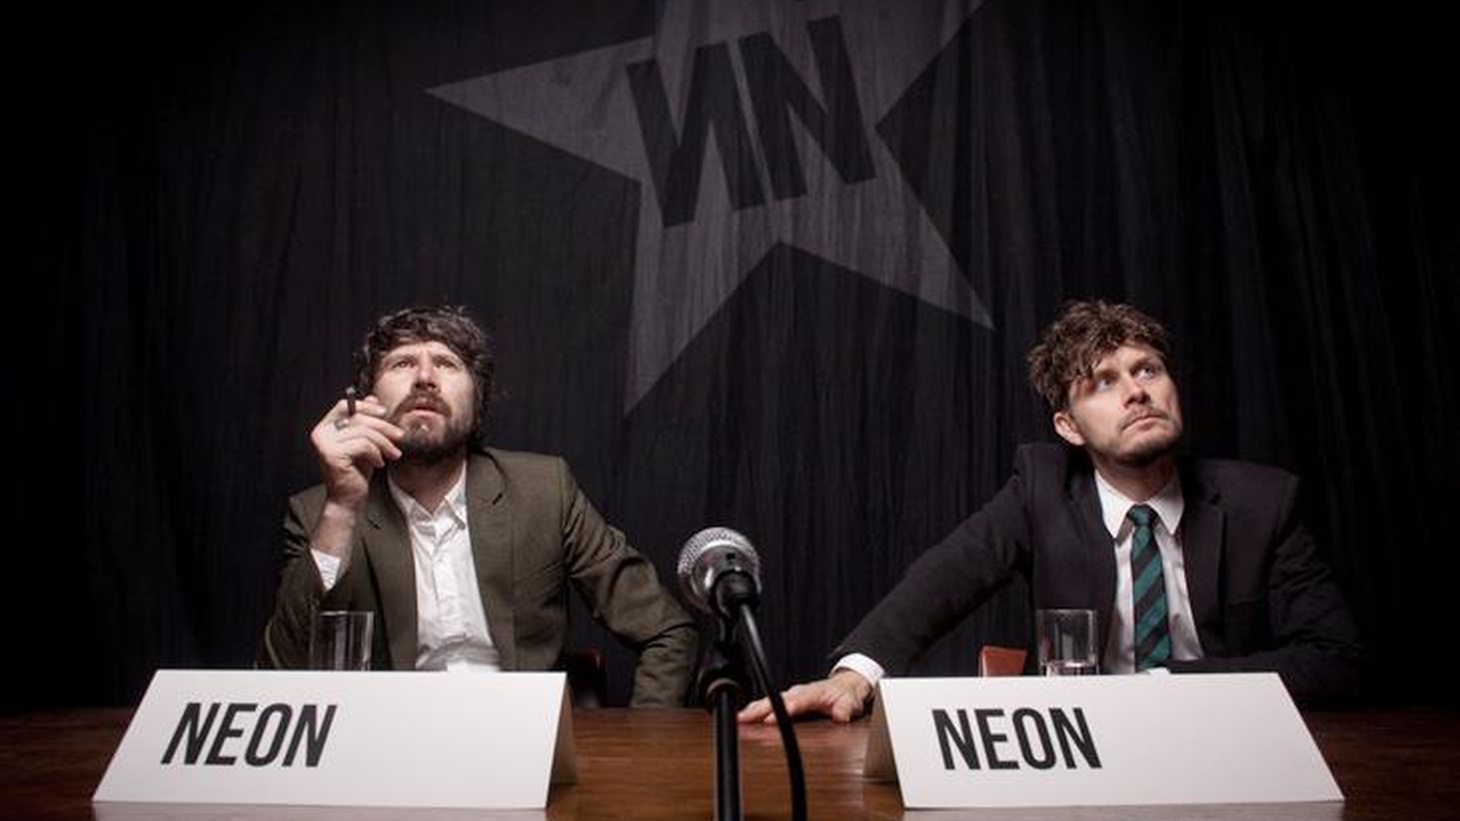 Gruff Rhys of Super Furry Animals joined with Boom Bip to form Neon Neon a few years back. They made their debut with a concept album about carmaker John DeLorean.